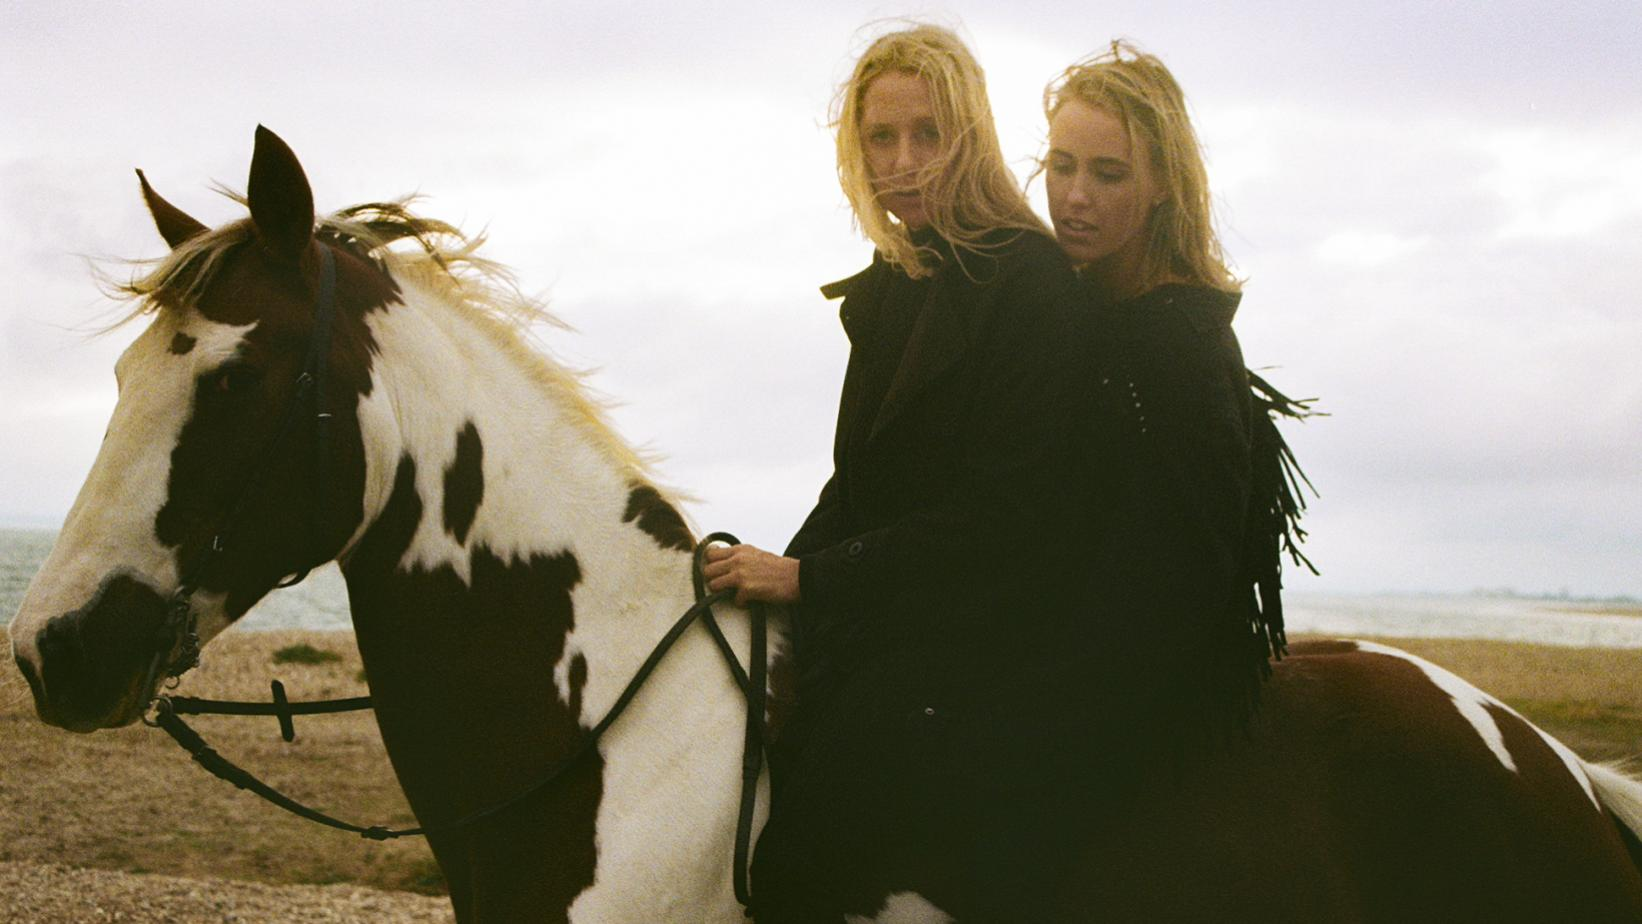 Eli & Fur pose on top of a horse